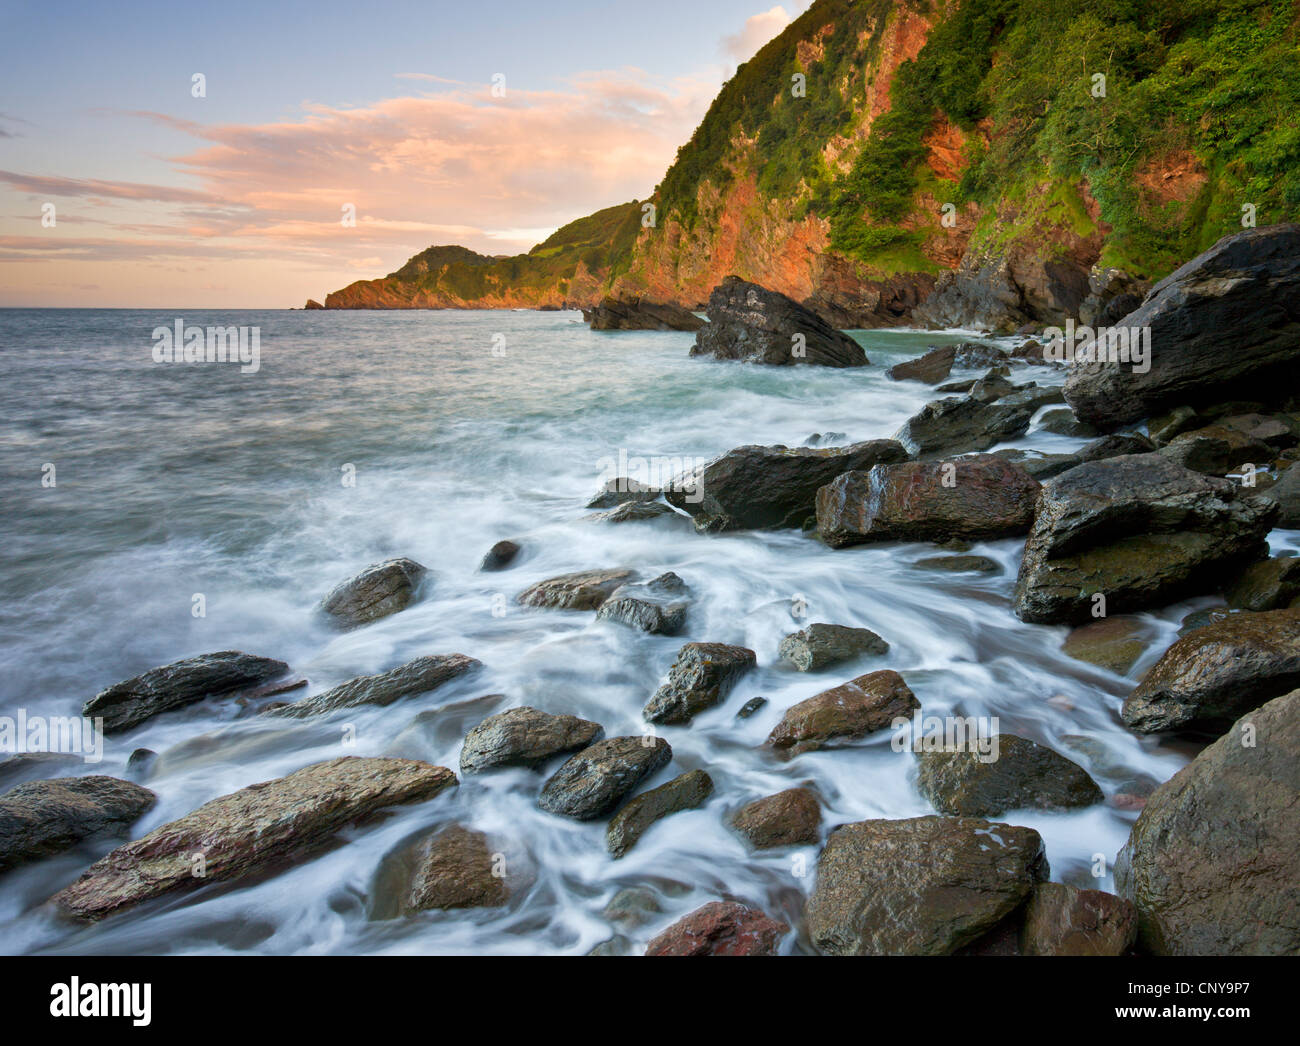 Waves crash around the rocky shores of Woody Bay at high tide, Exmoor National Park, Devon, England. Summer (August) - Stock Image